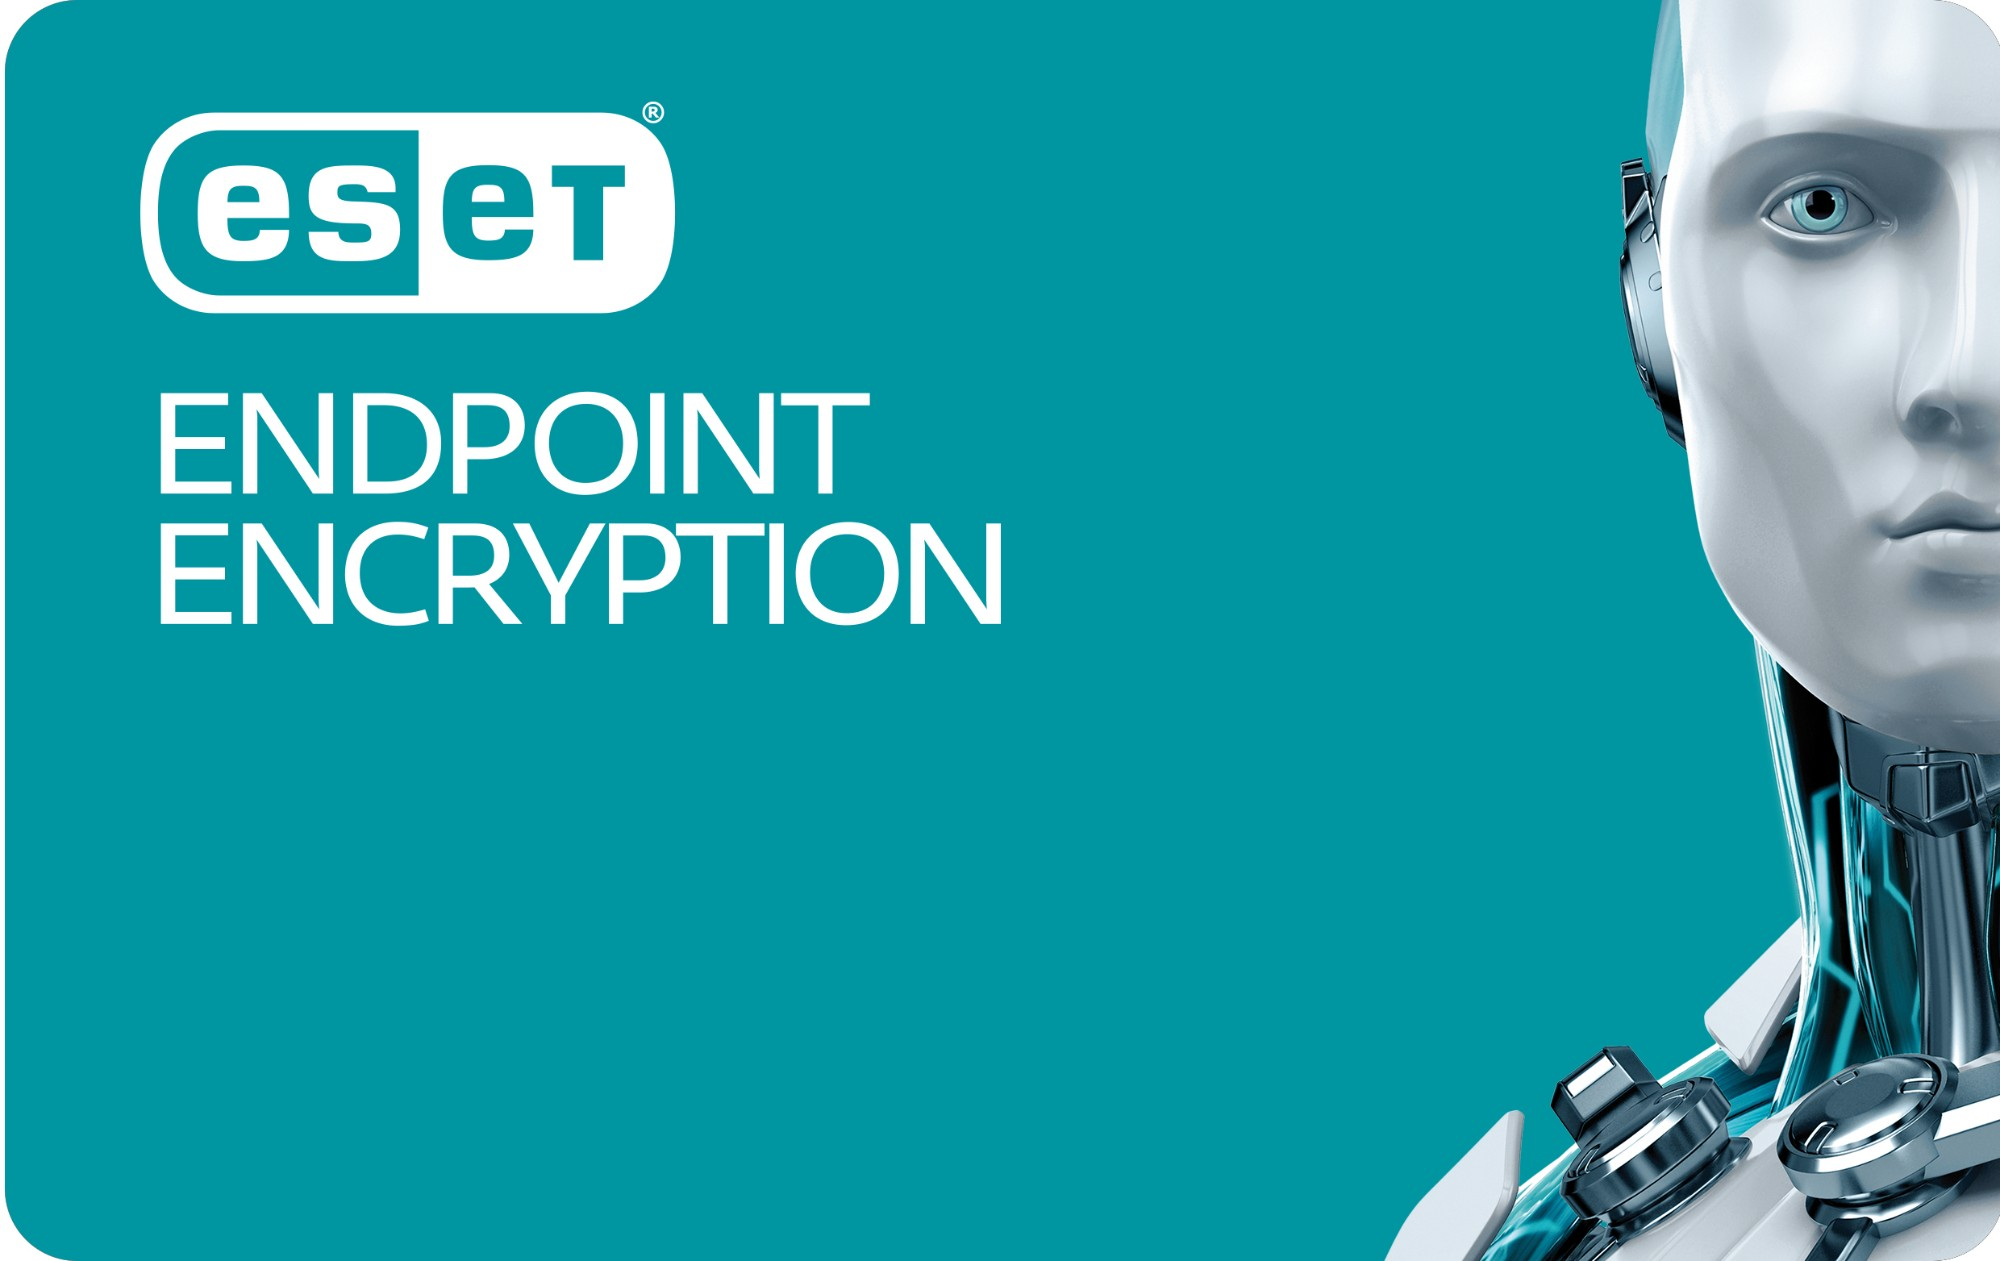 ESET Endpoint Encryption Pro 50 - 99 User Education (EDU) license 50 - 99 license(s) 2 year(s)